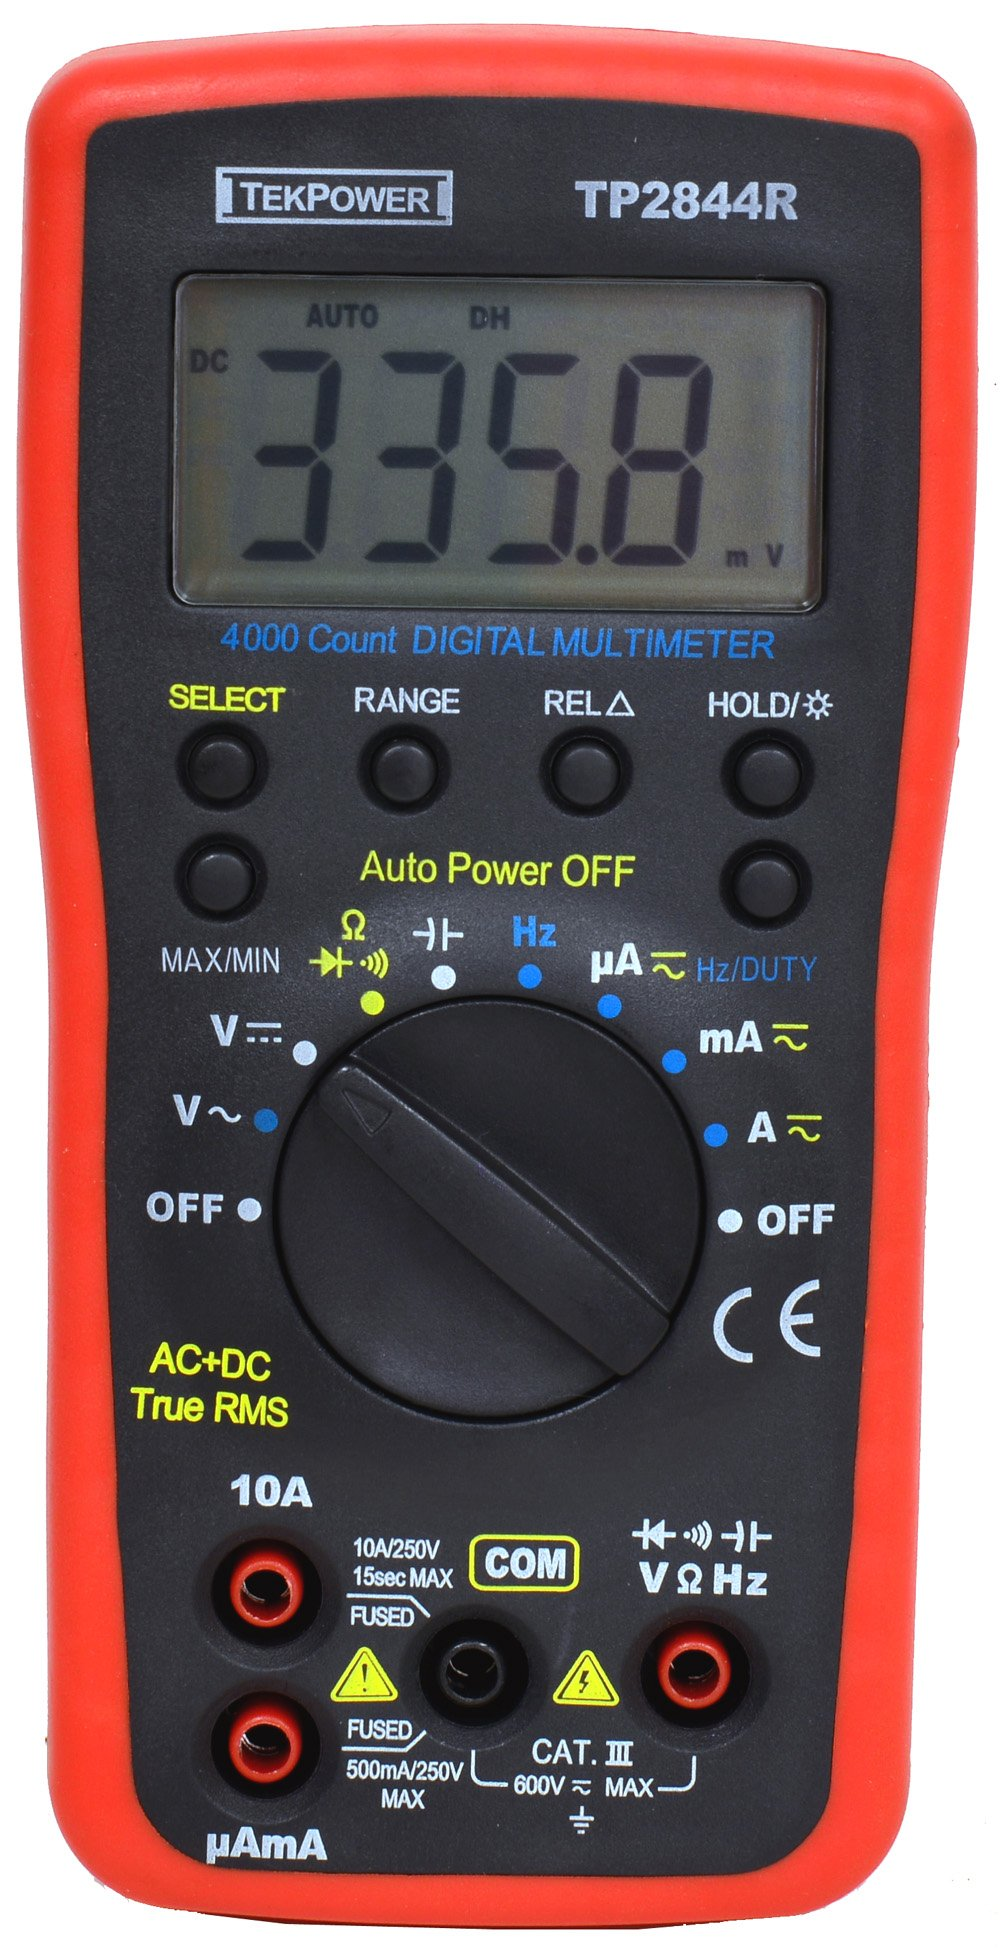 Tekpower TP2844R True RMS Auto-ranging Digital Multimeter For General Purpose With High Accuracy and Resolution, True-RMS